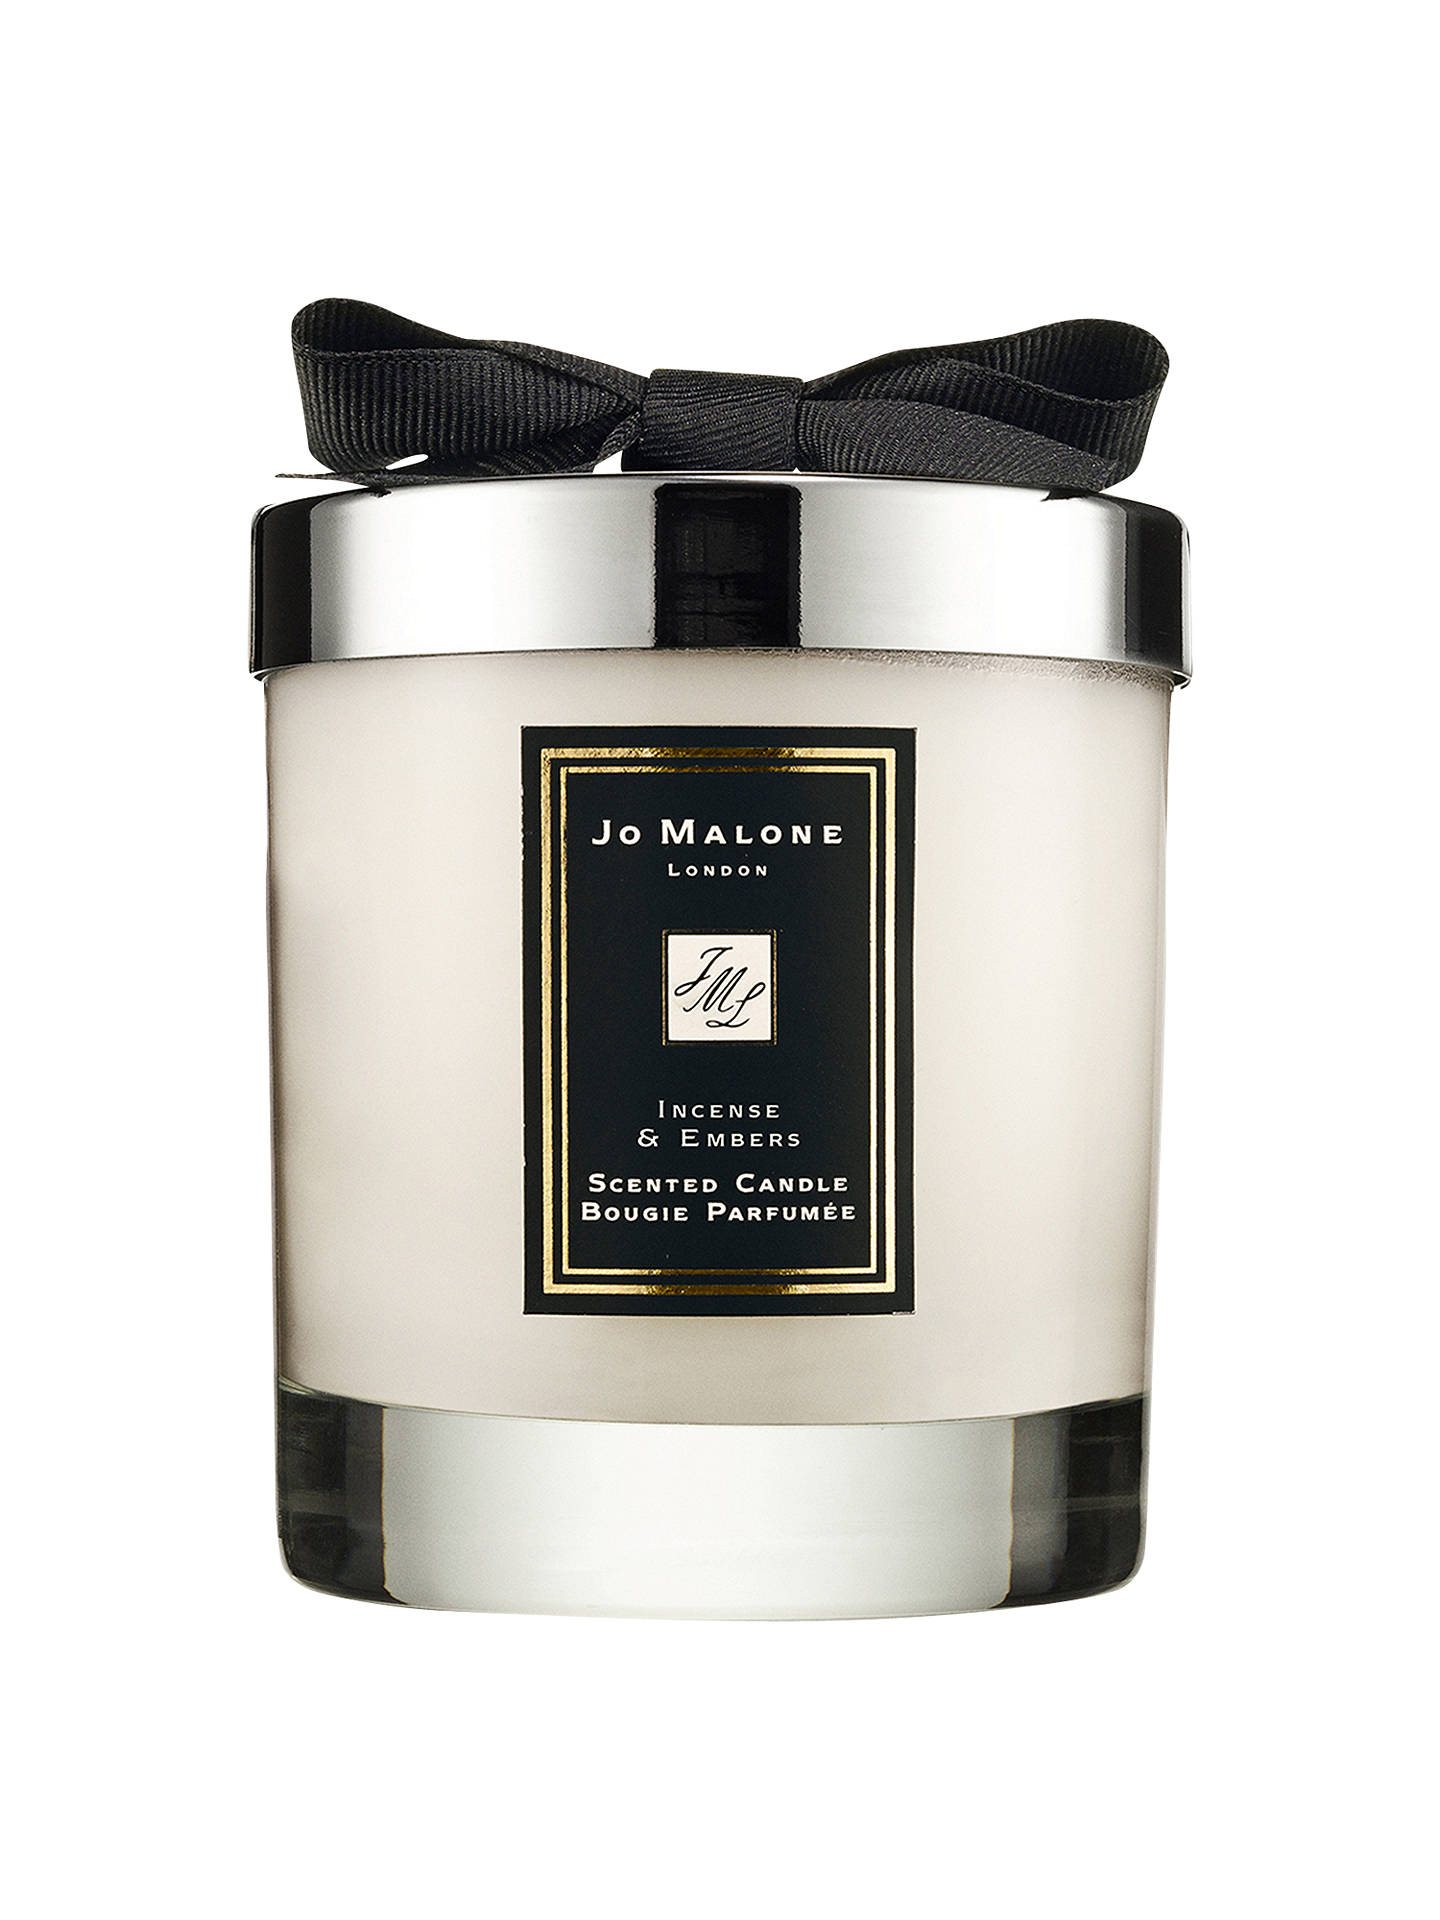 jo malone london incense embers scented candle 200g at. Black Bedroom Furniture Sets. Home Design Ideas